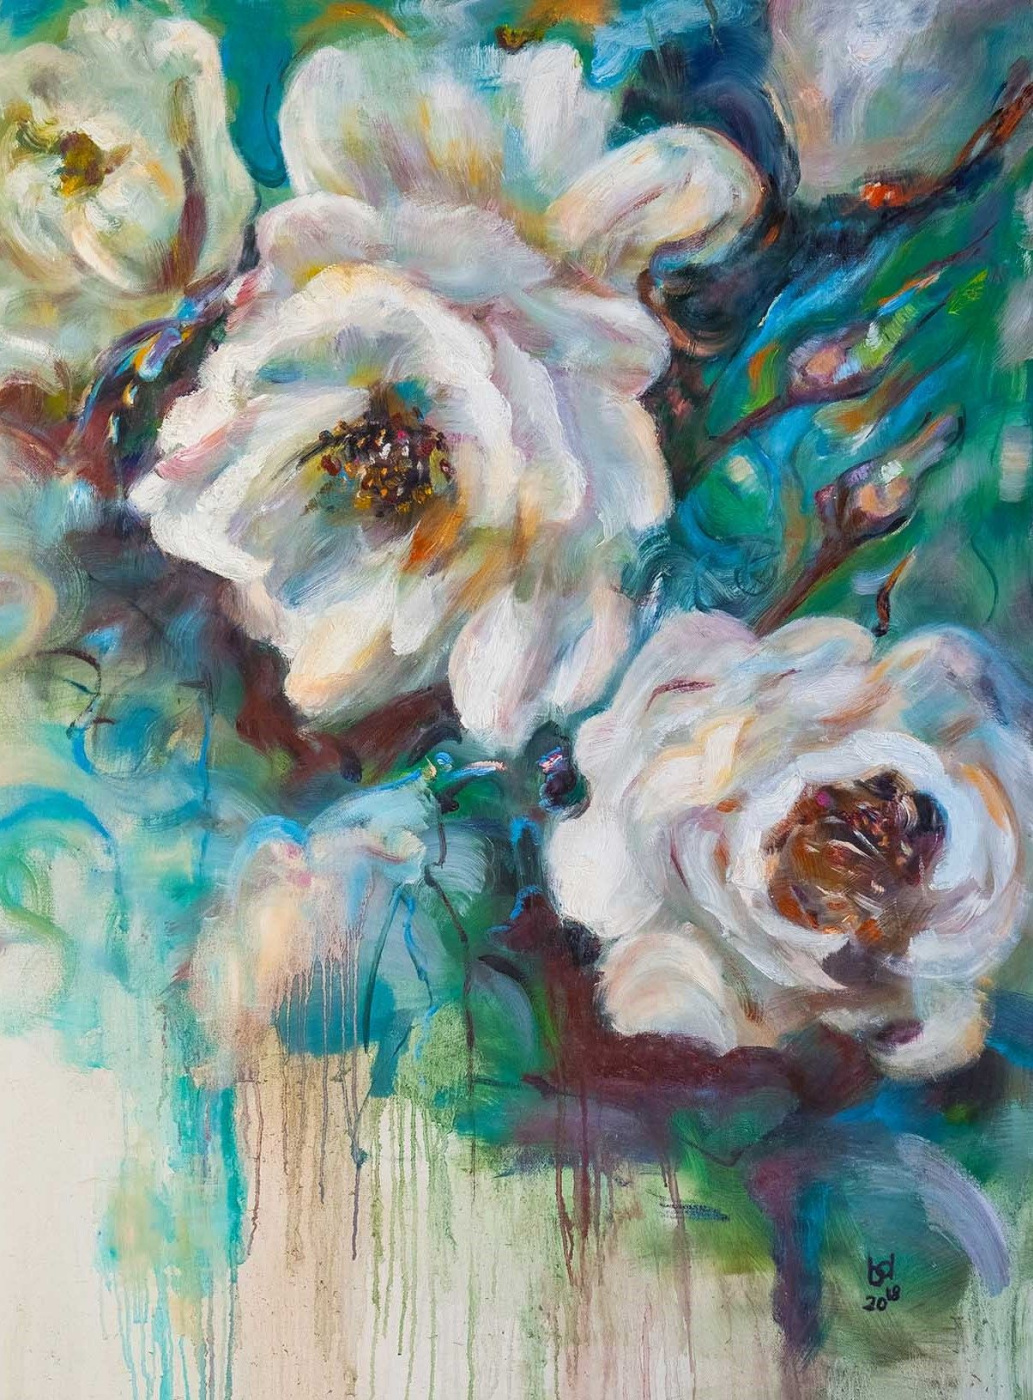 """Brian dupre. White Rosehip, """"In the Blooming Garden"""" series """""""